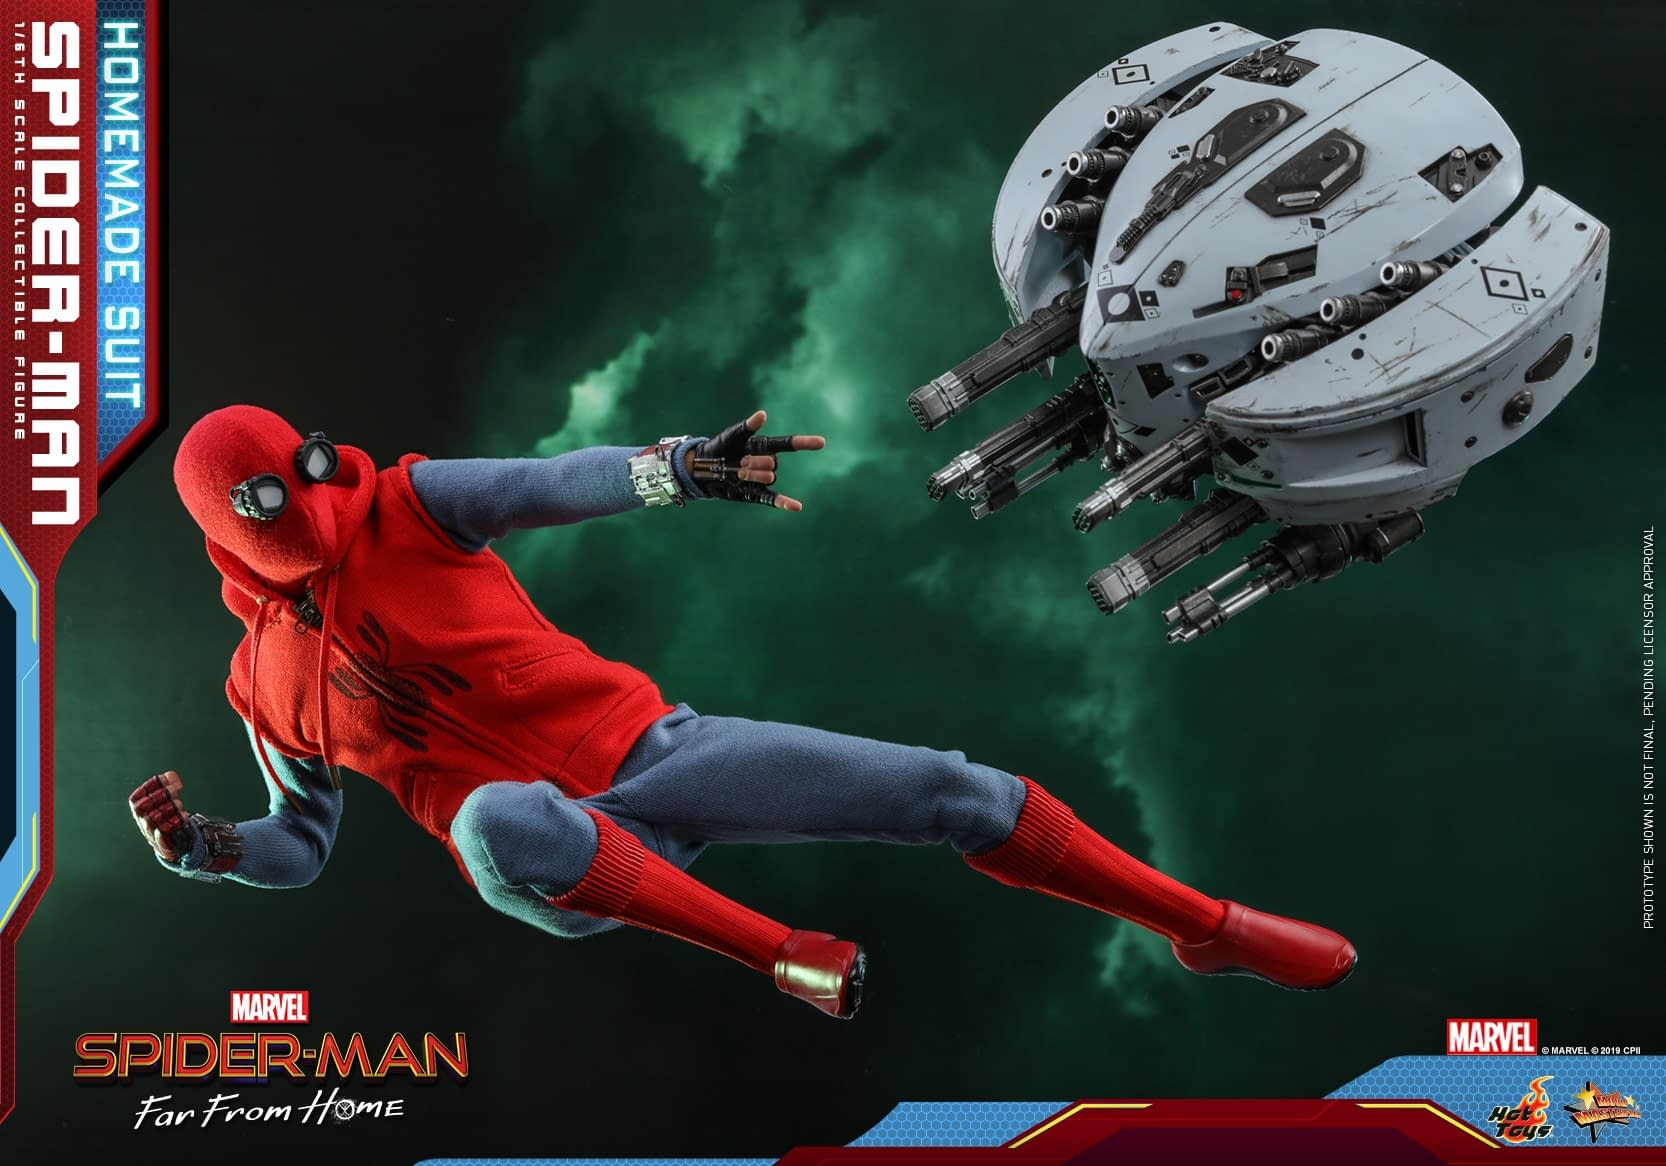 Fight through Mysterio's Illusions with New Hot Toys Spider-Man Figure